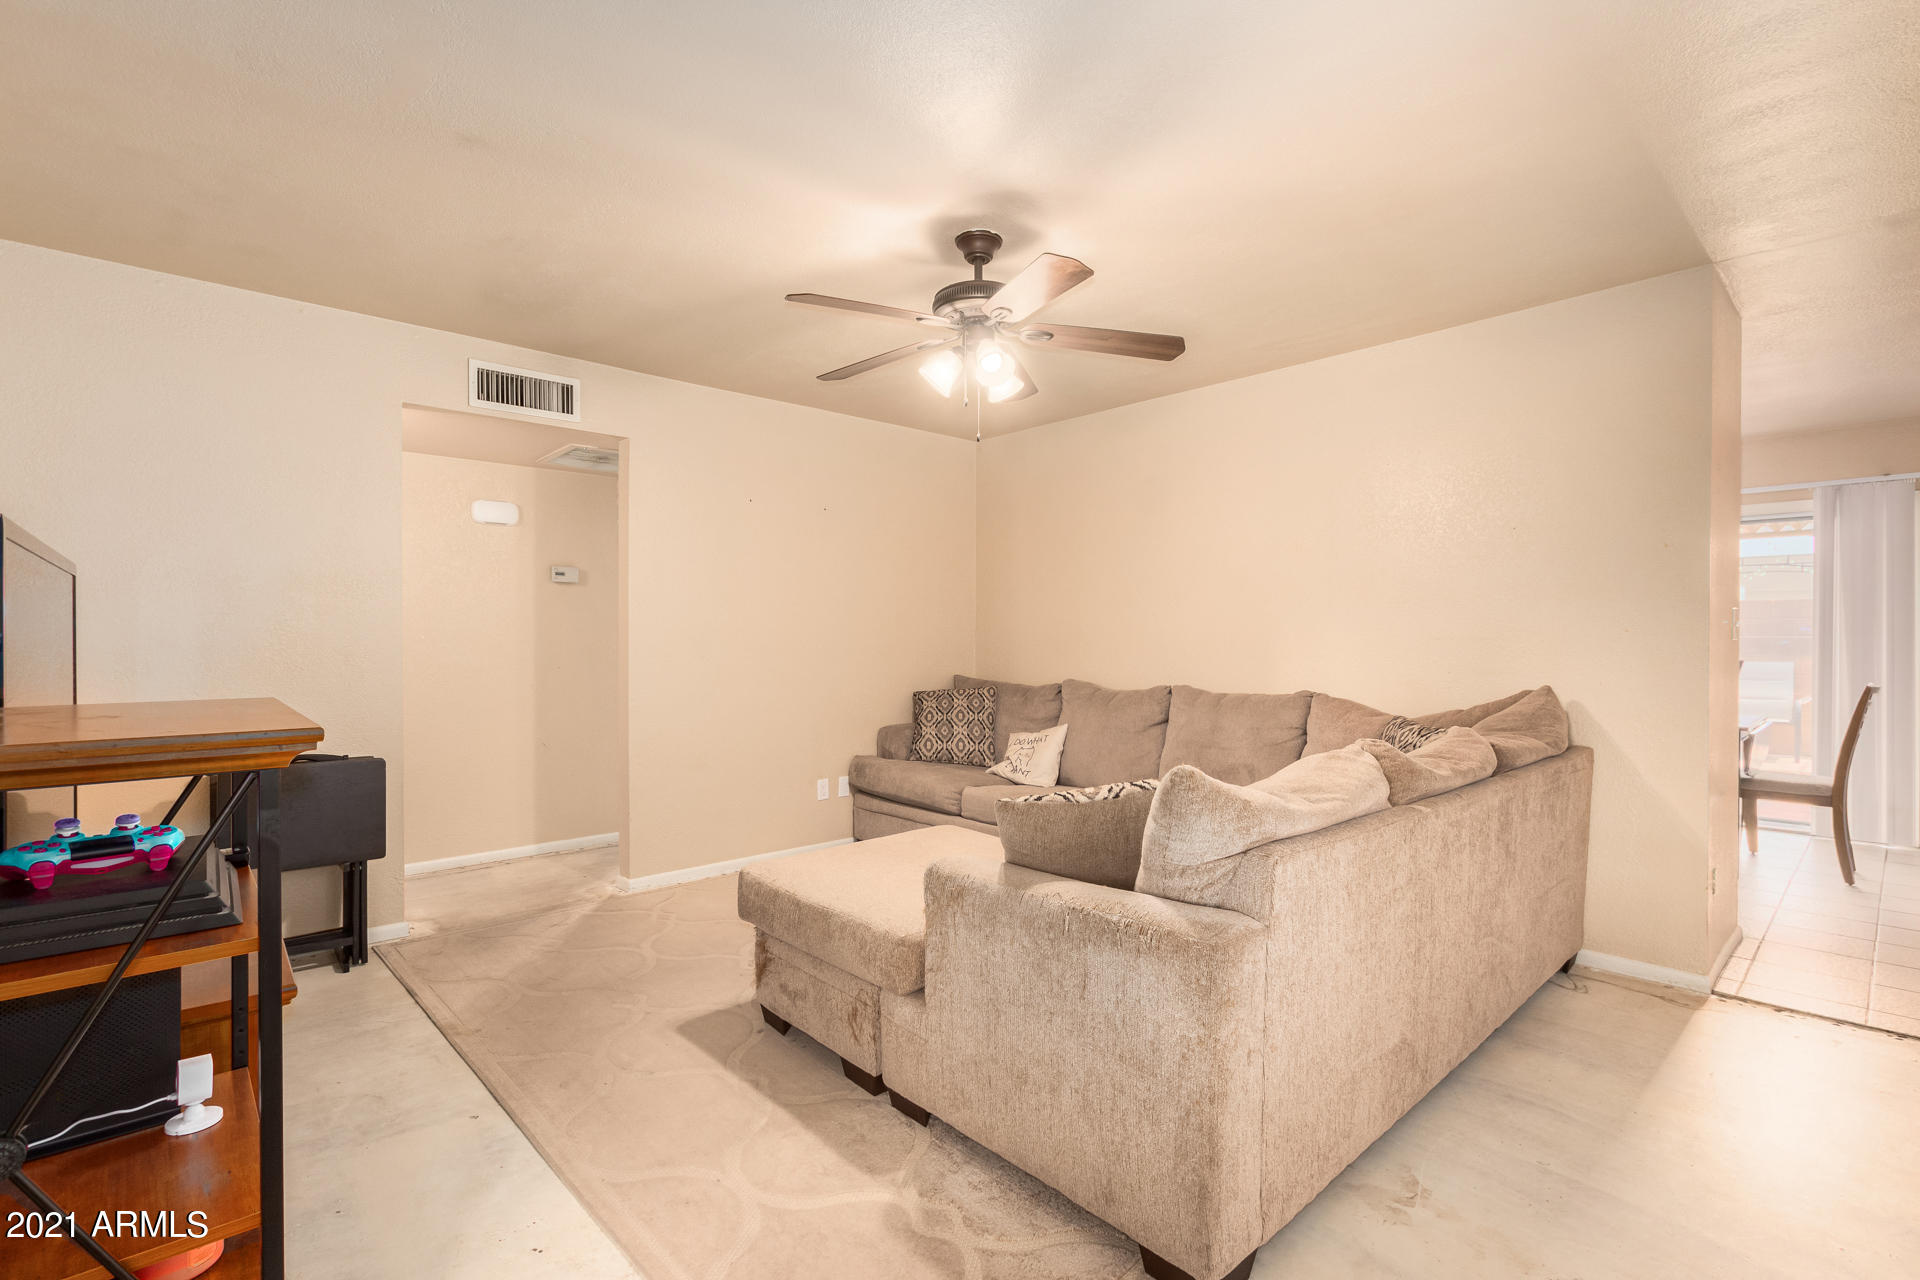 Photo #3: large living/family room